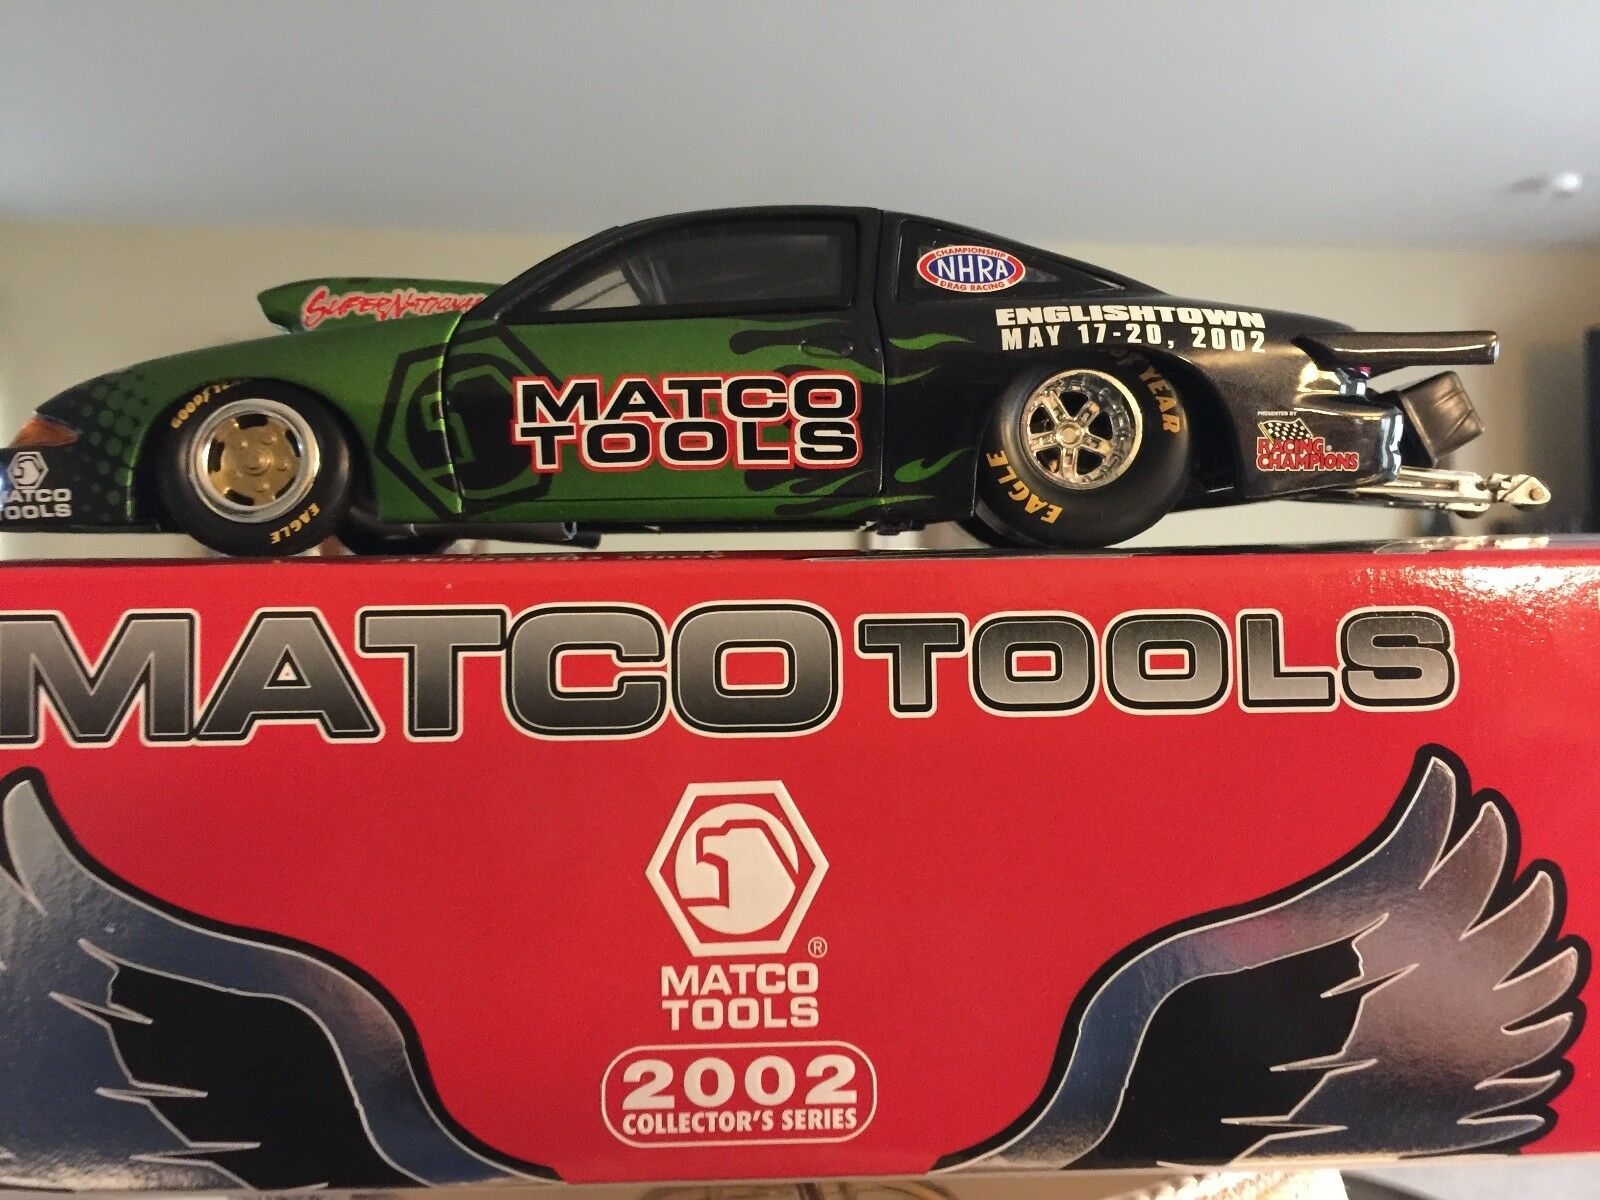 2002 Super Nationals ingleseTown Matco strumentos Collectors Series